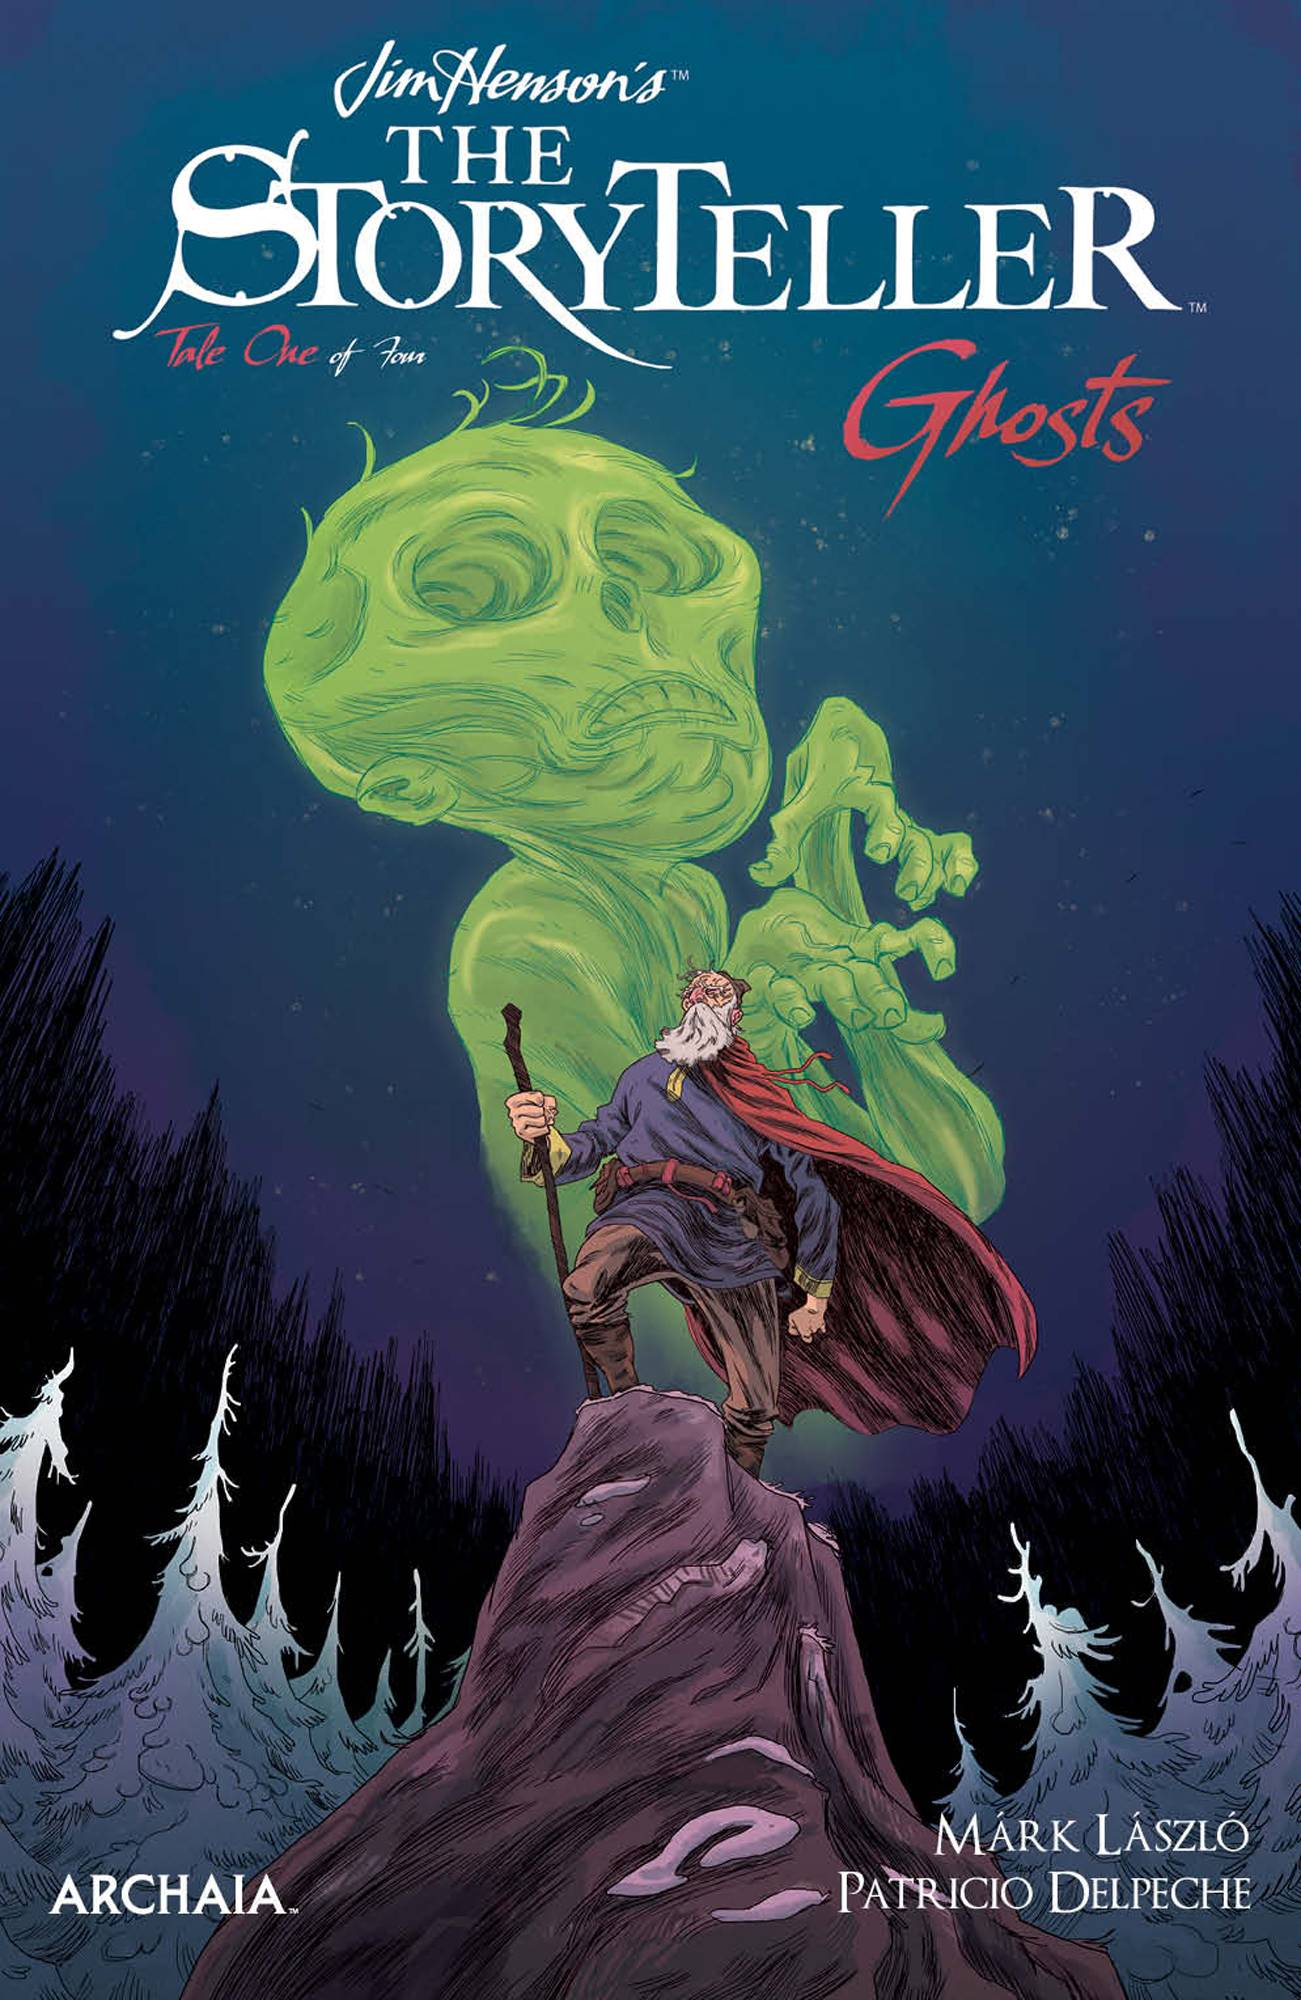 JIM HENSON STORYTELLER GHOSTS #1 (OF 4) CVR B LASZLO